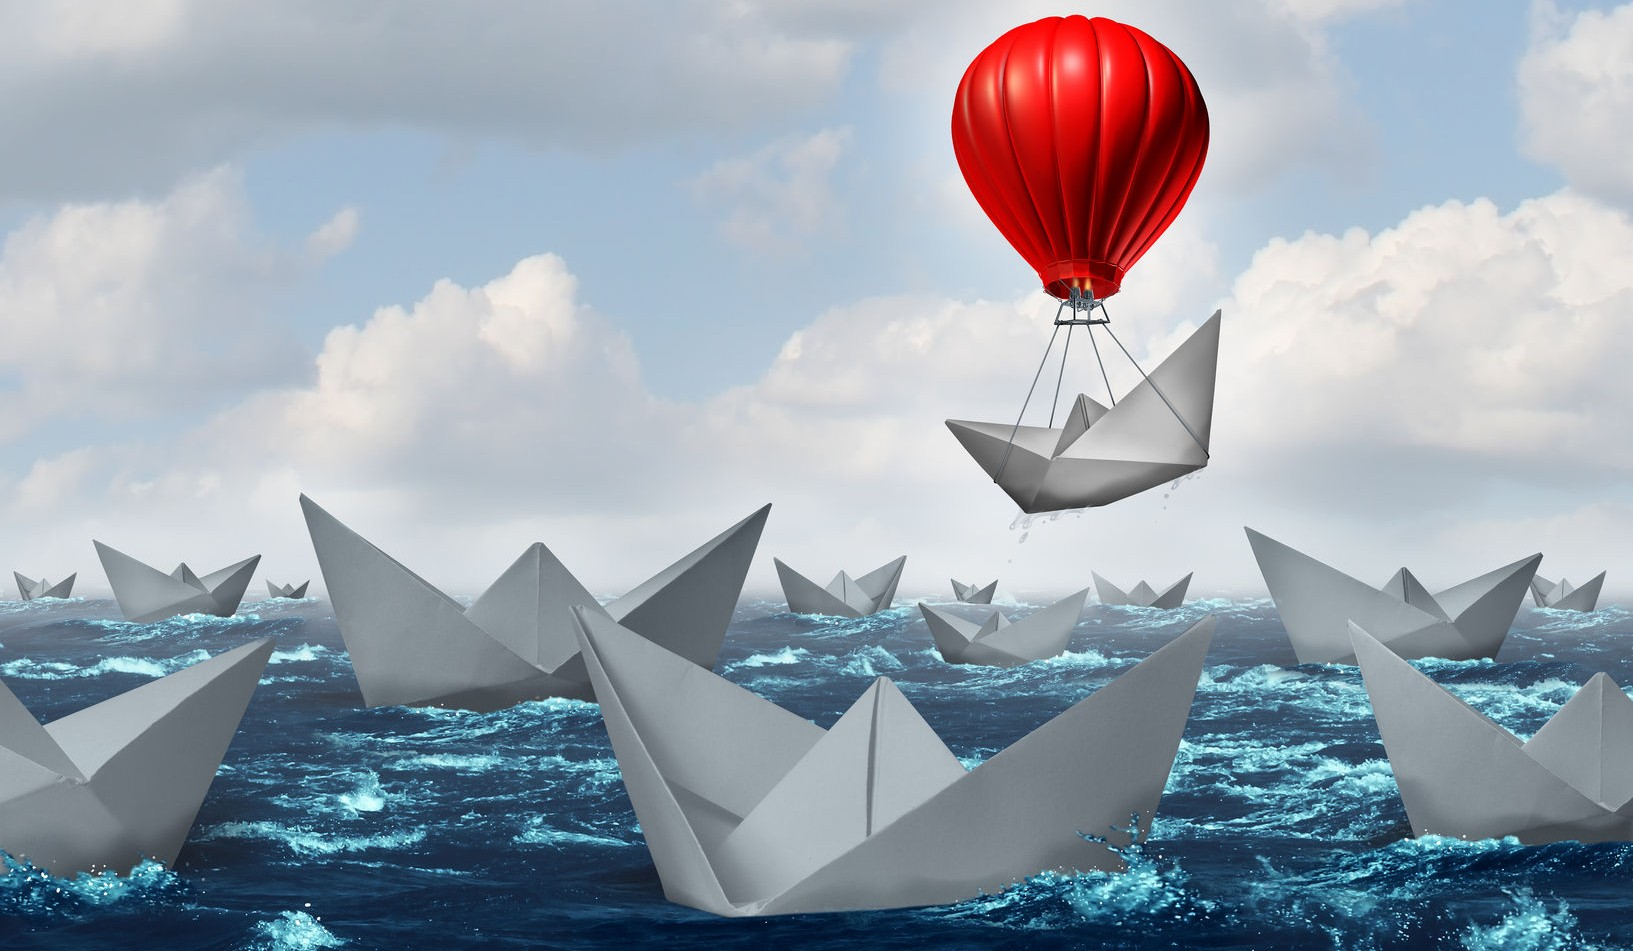 41506713 - business advantage concept and game changer symbol as an ocean with a crowd of paper boats and one boat rises above the rest with the help of a red hot air balloon as a success and innovation metaphor for new thinking.